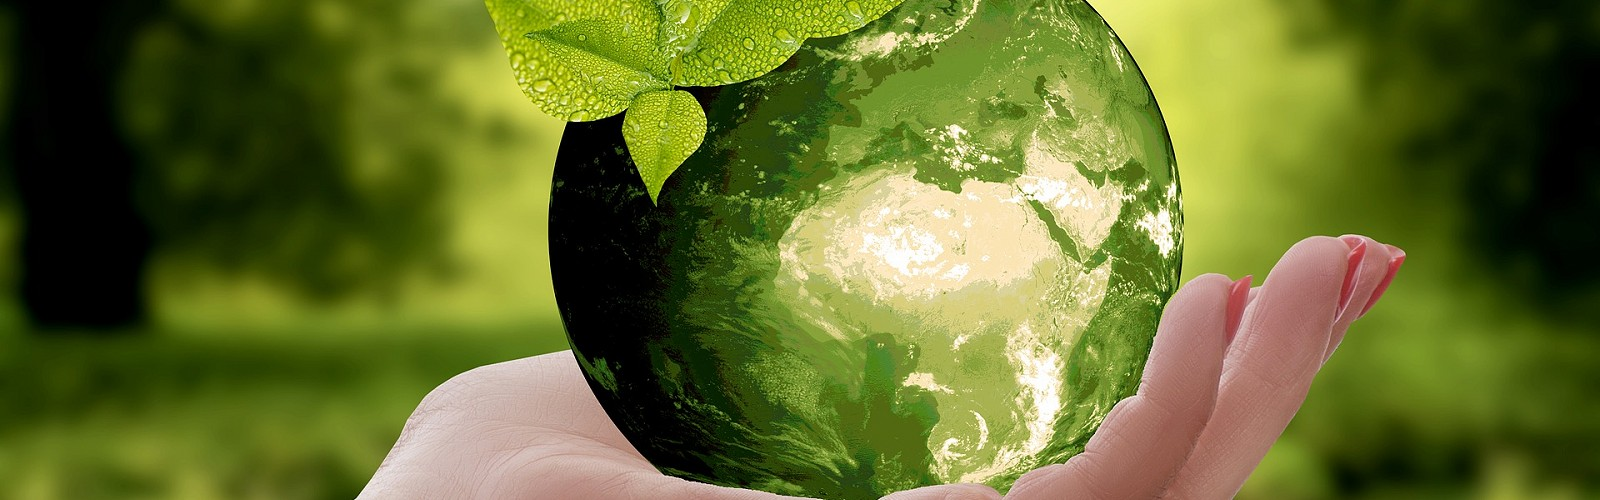 hand holding a green globe (pixabay)